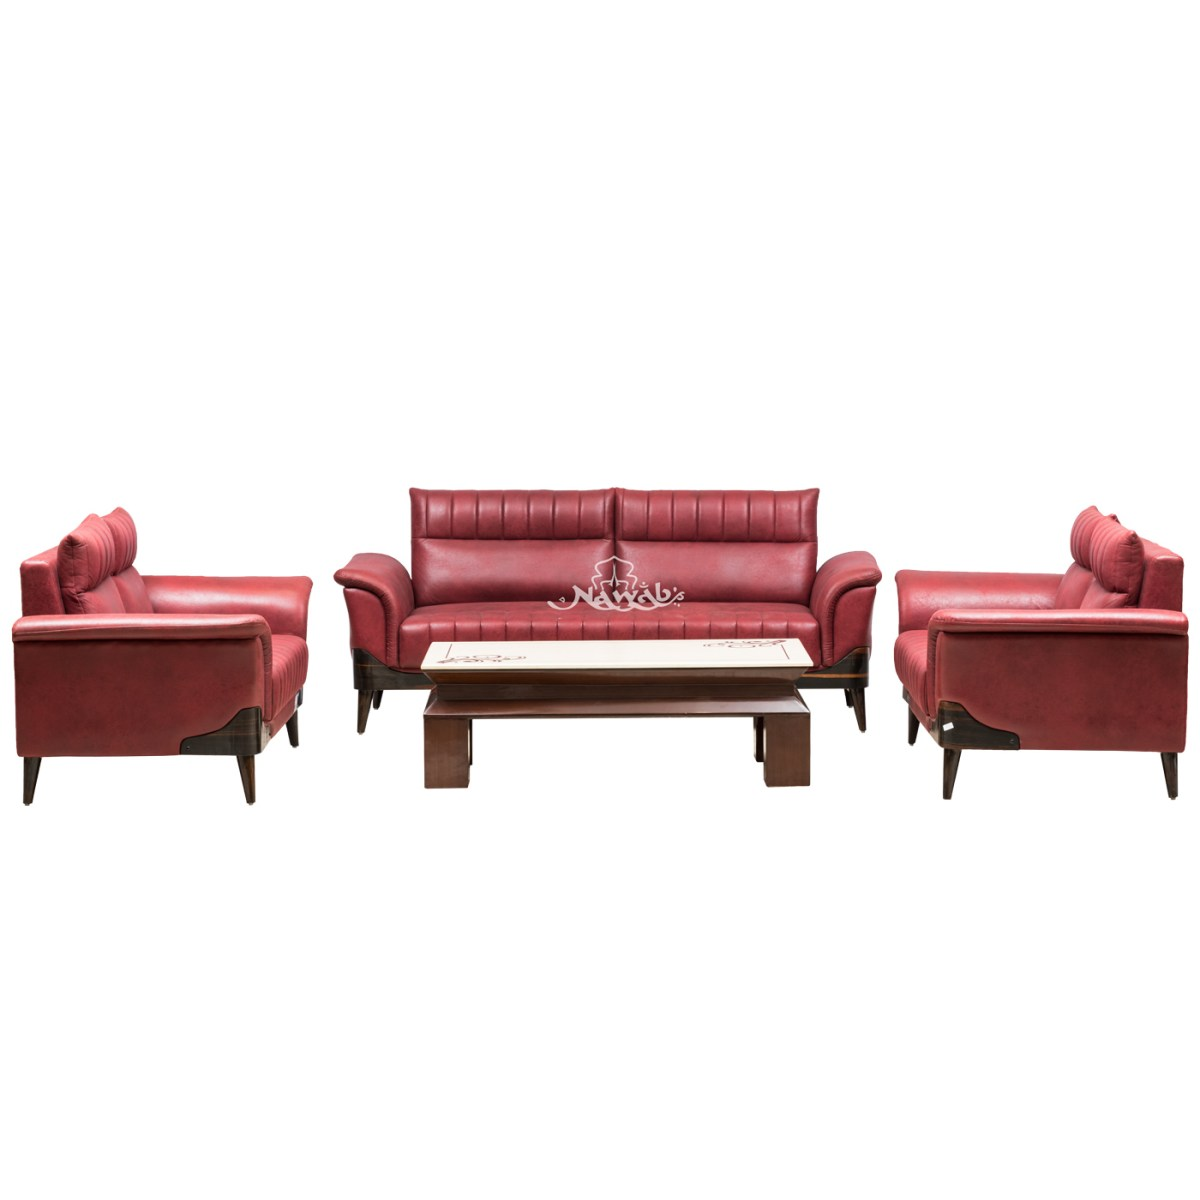 Upholstered-sofa-sets